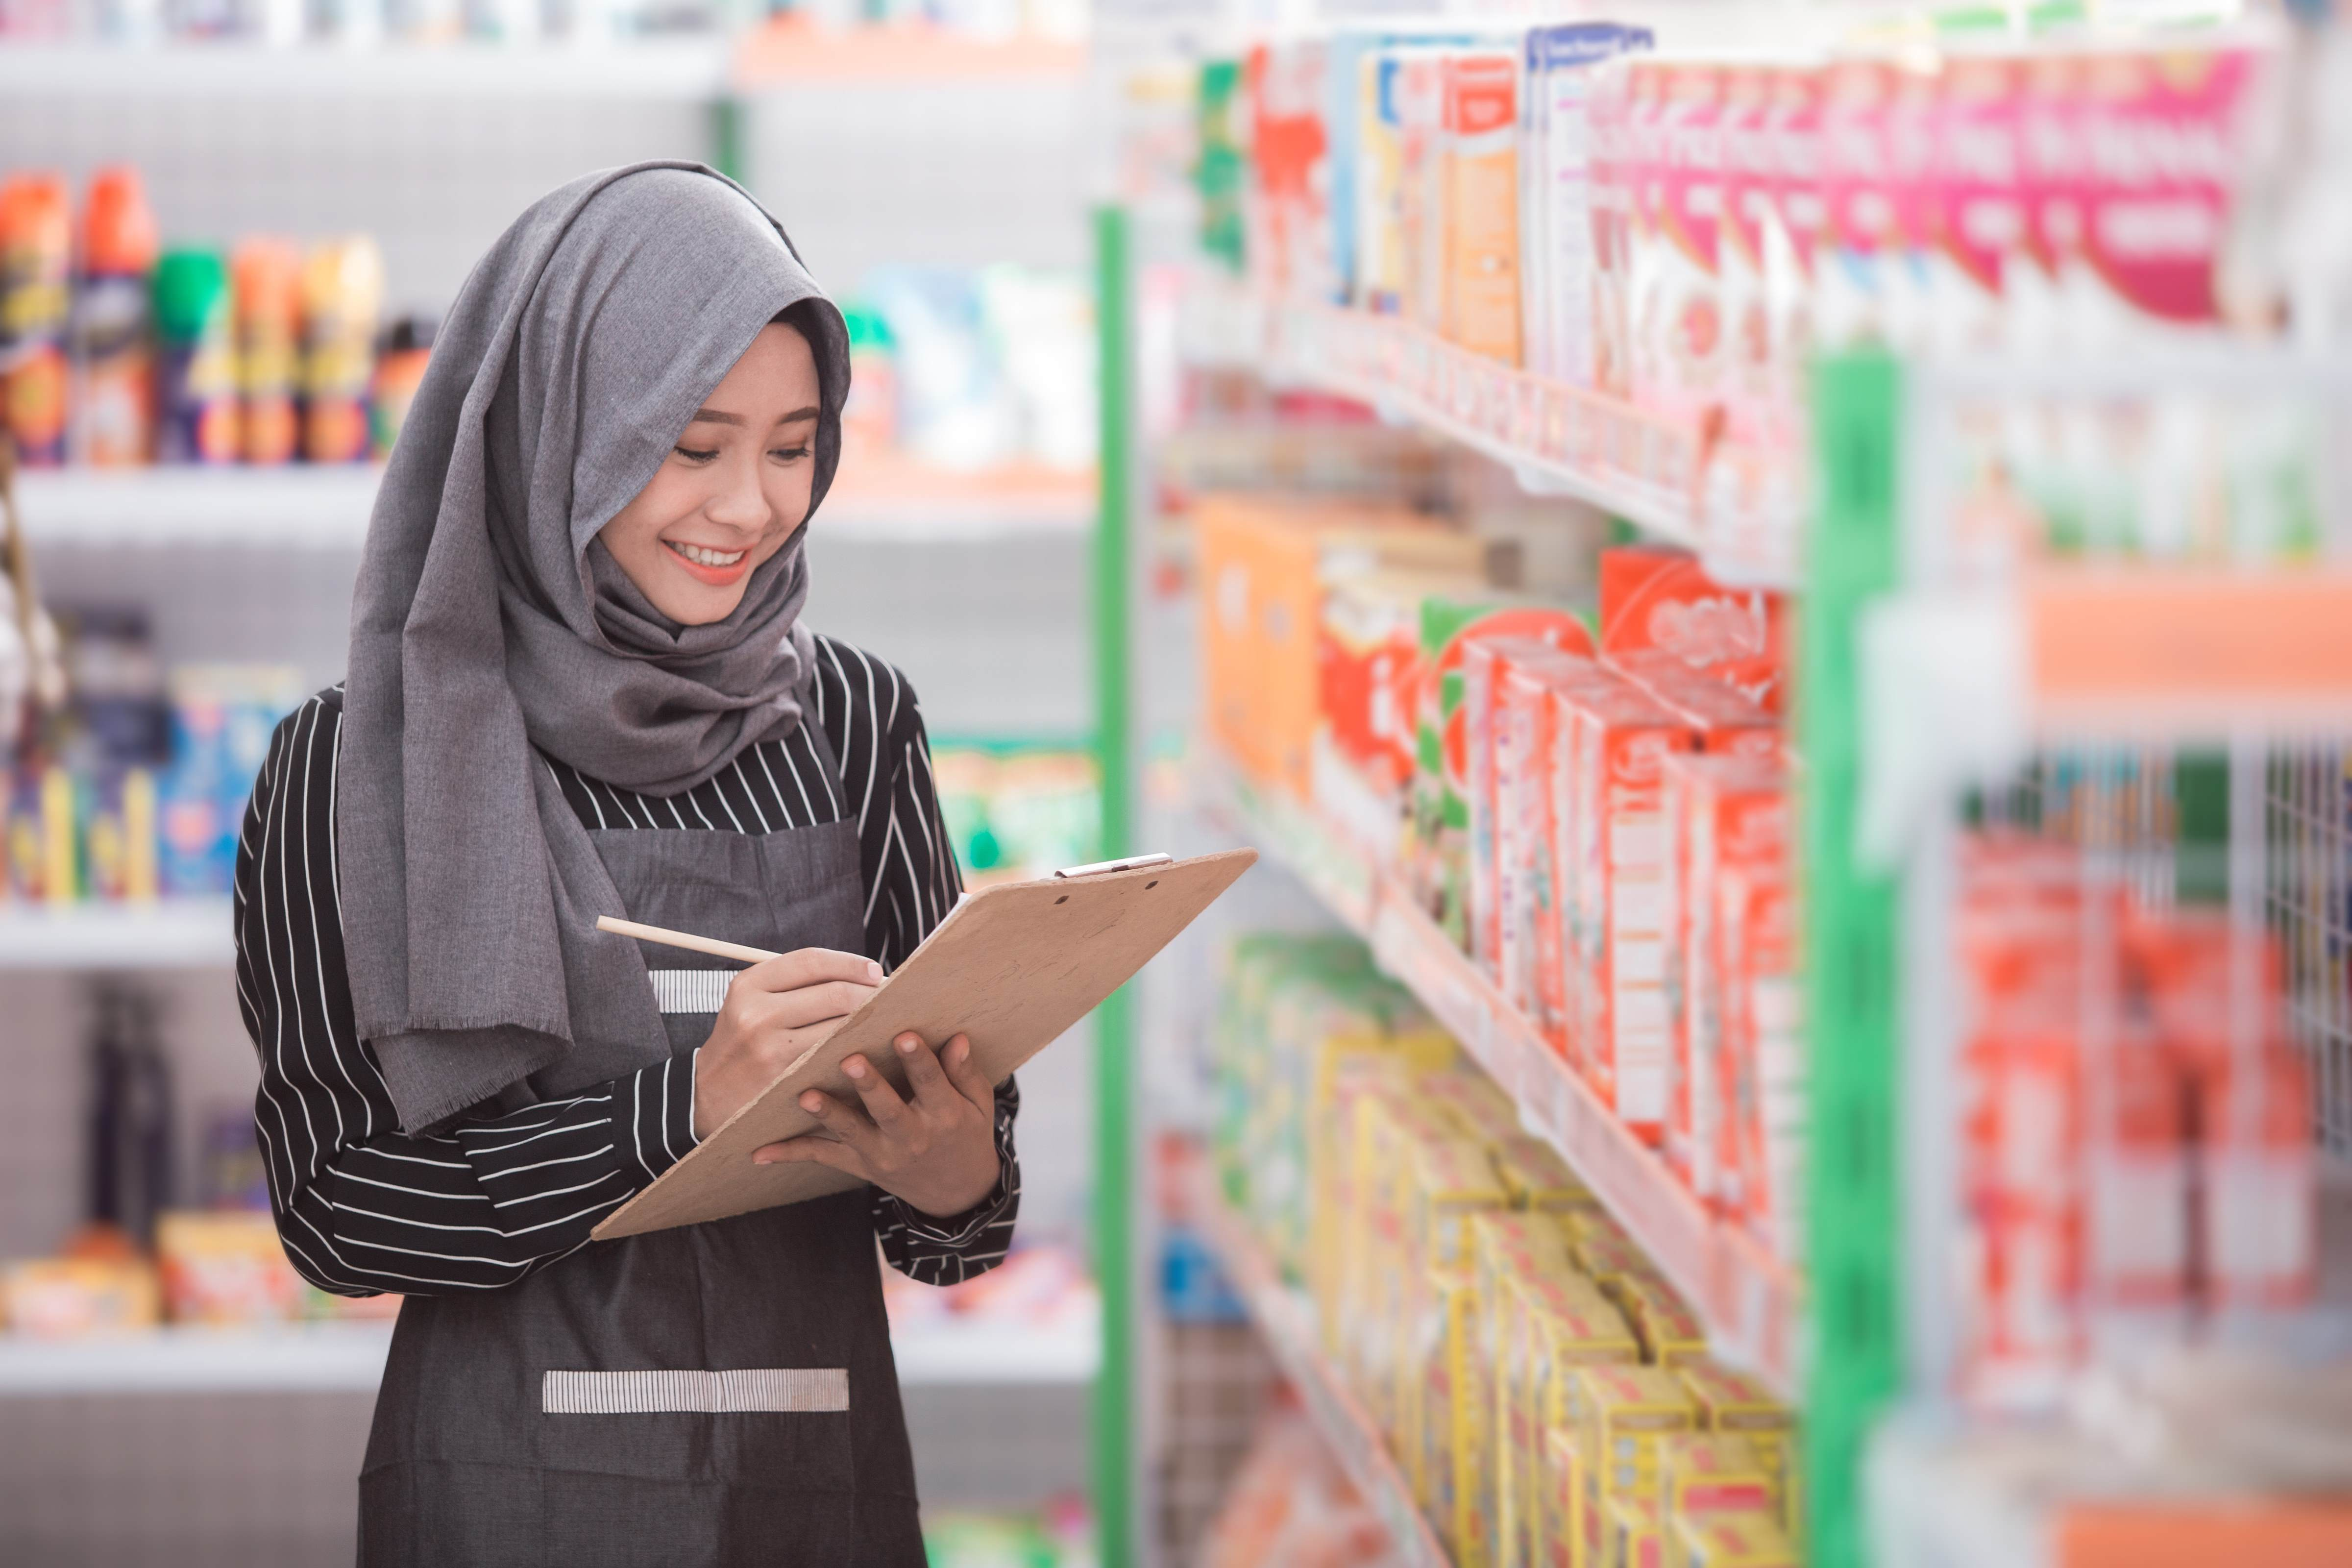 Beautiful Female wearing a headscarf looking at products on shelves in a shop. Croda has many products that are compliant with Halal Product Assurance law in Indonesia.